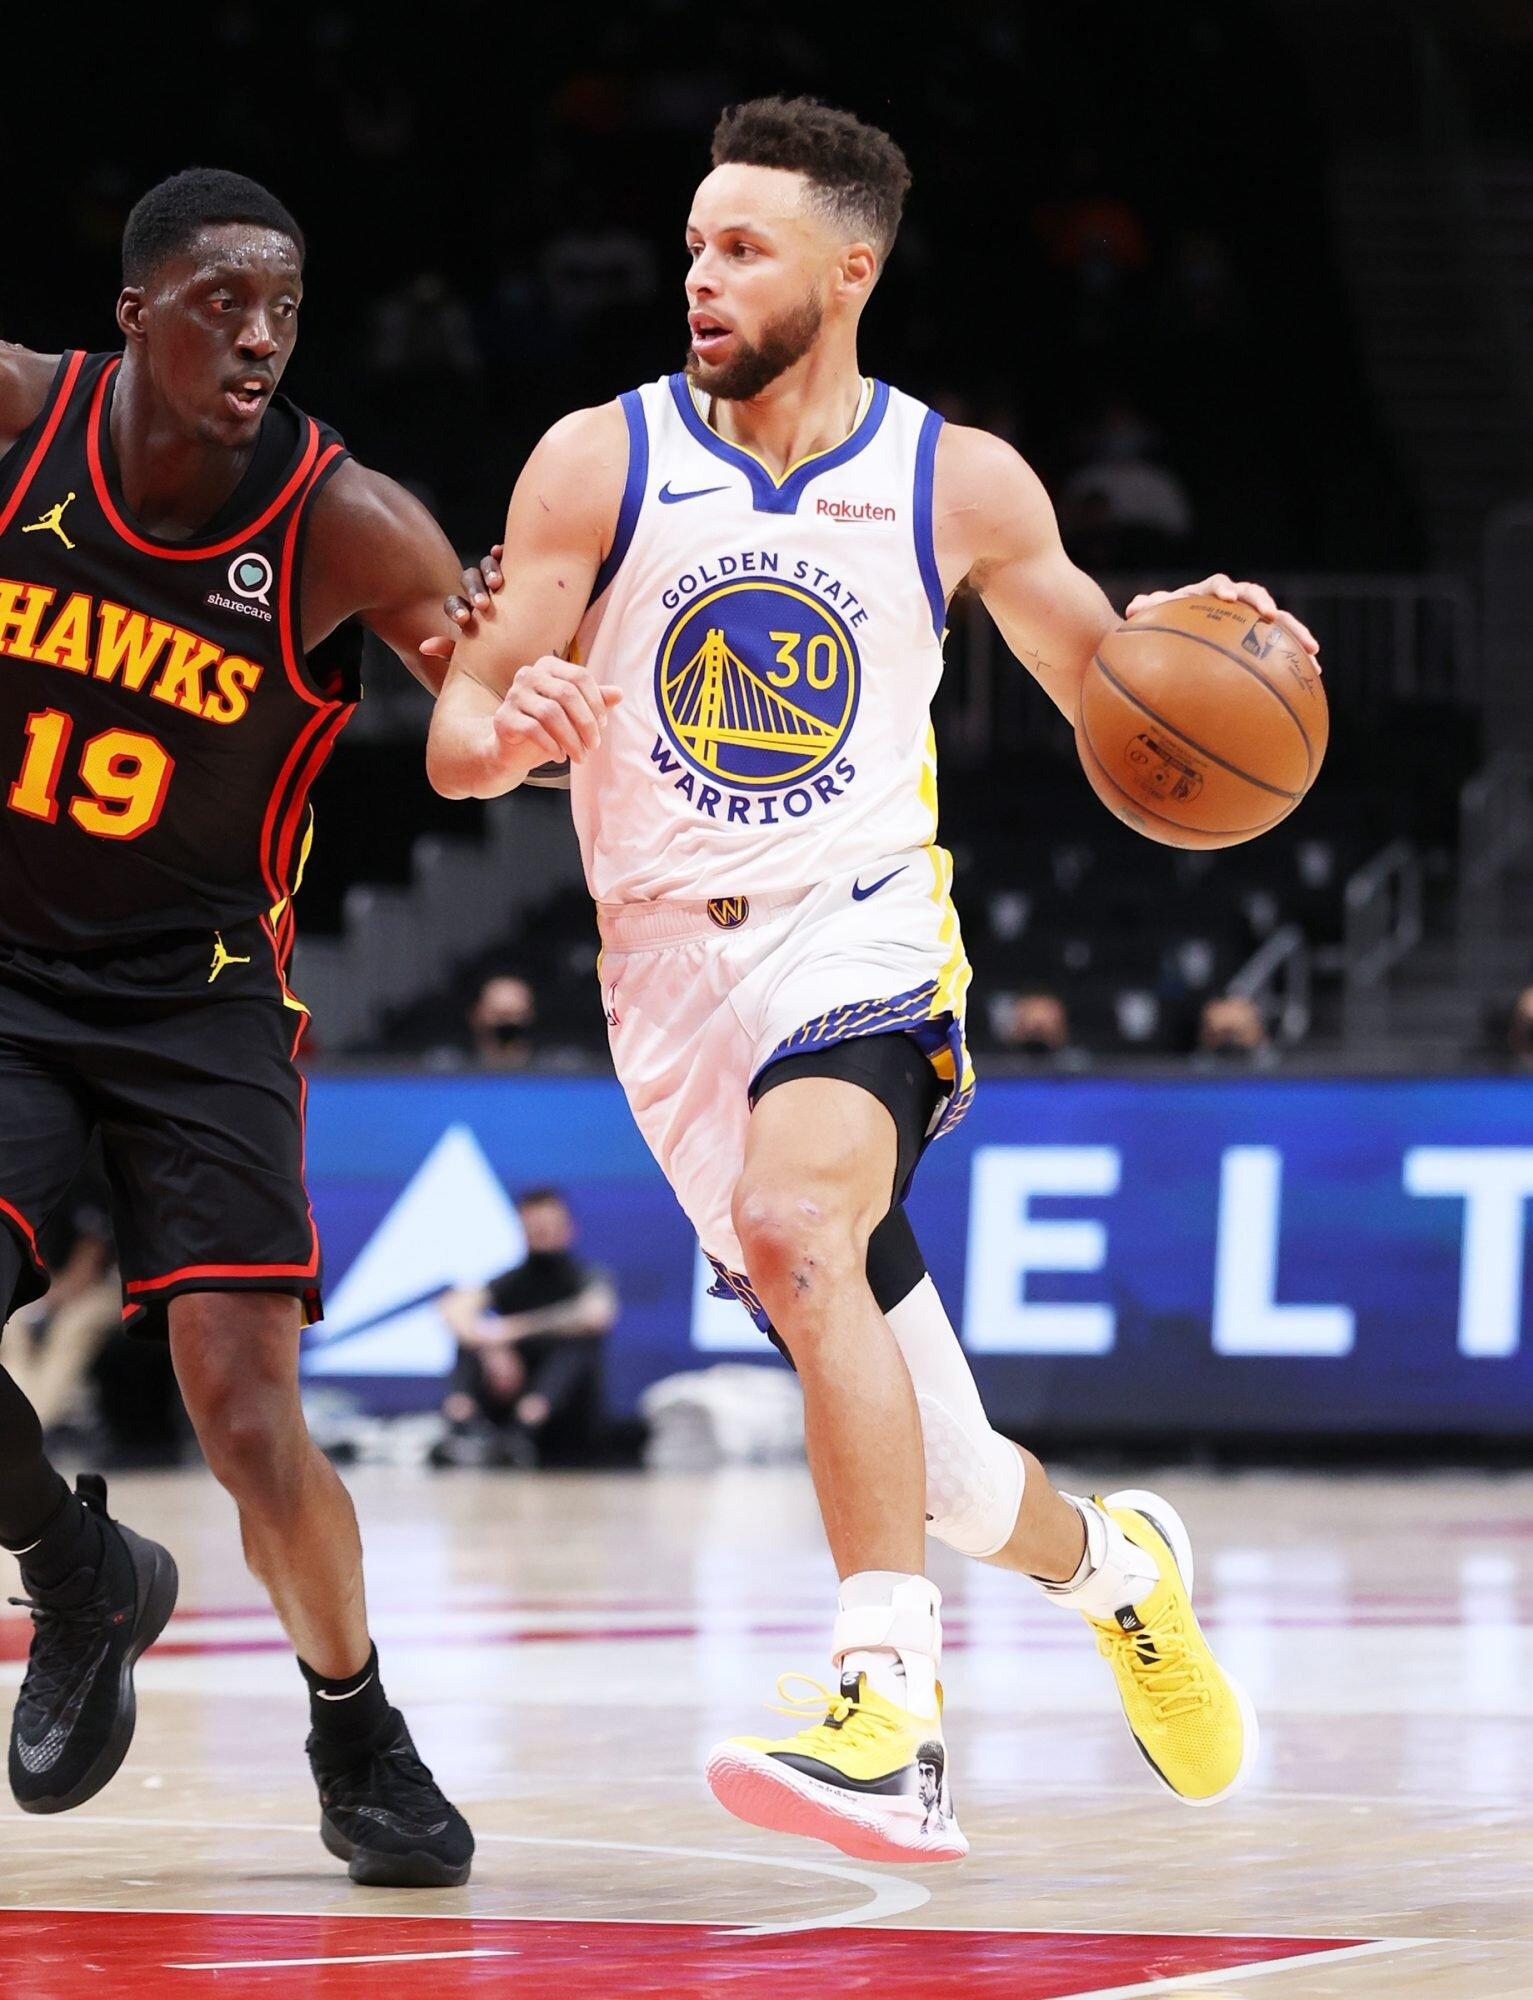 uk.sports.yahoo.com: Stephen Curry Wears Custom Hand-Painted Sneakers to Support Asian American Community